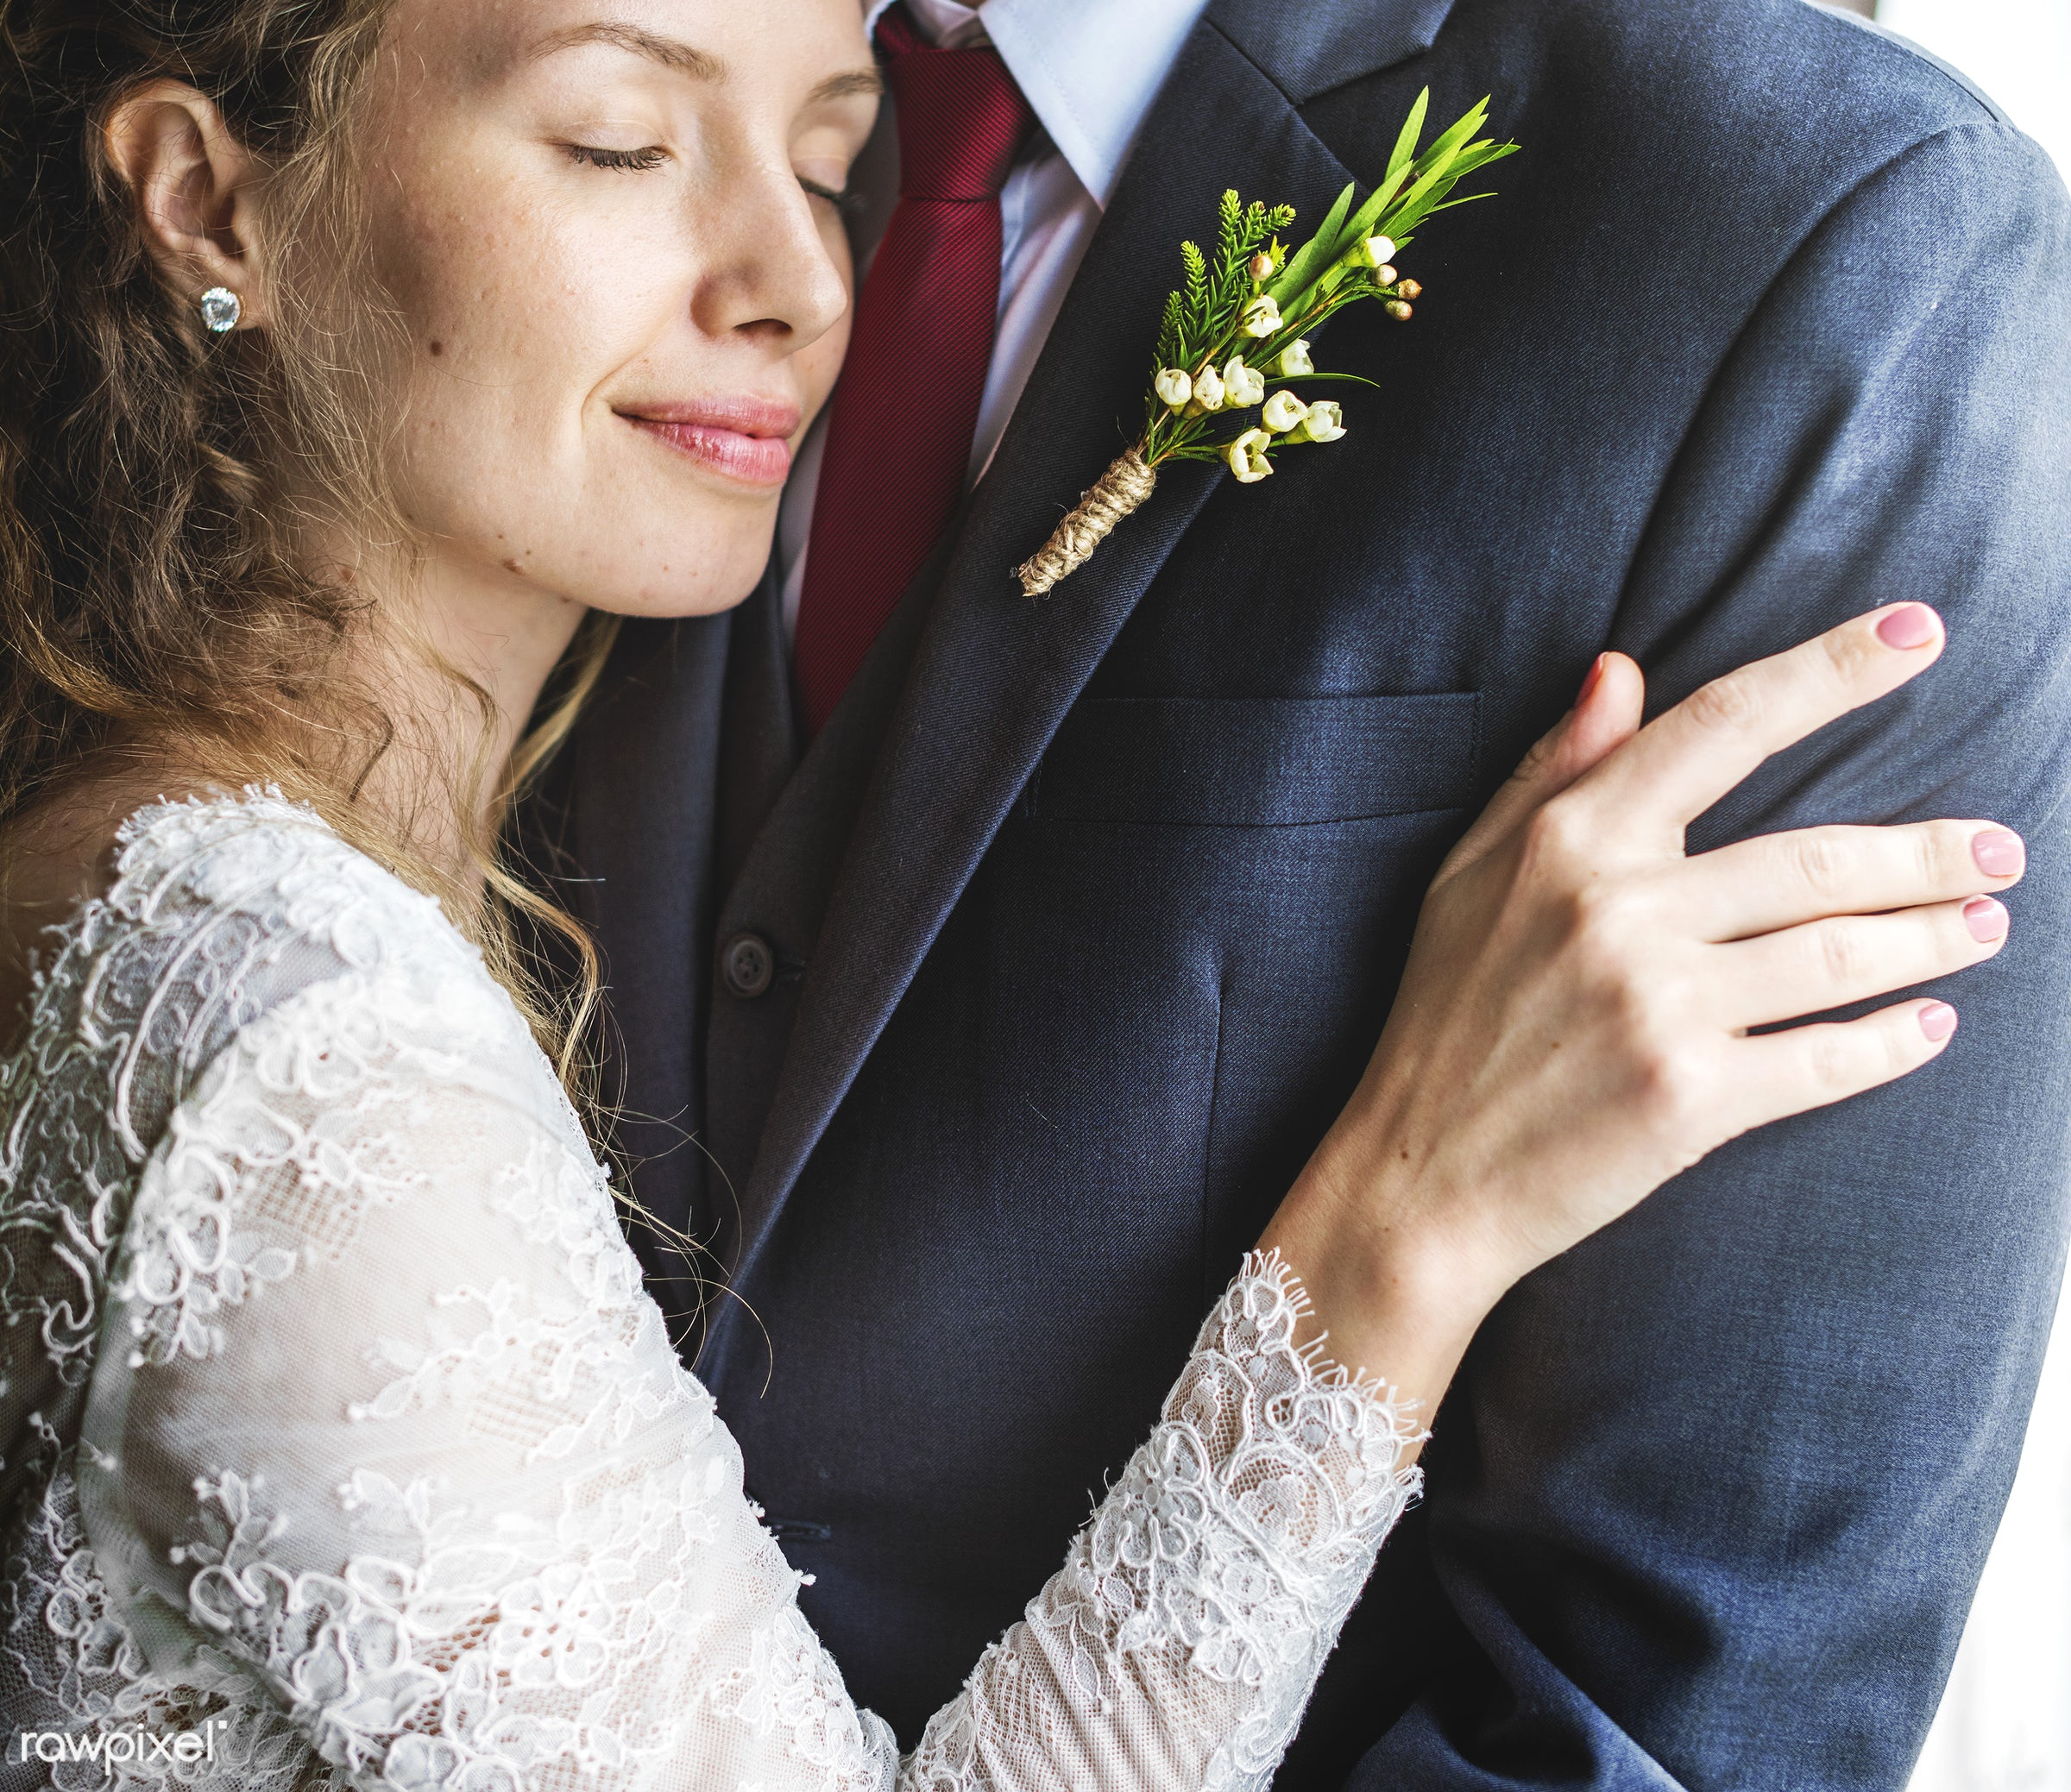 bouquet, person, hug, holding, tie, smitten, people, together, caucasian, glamour, love, woman, gown, flowers, cheerful,...